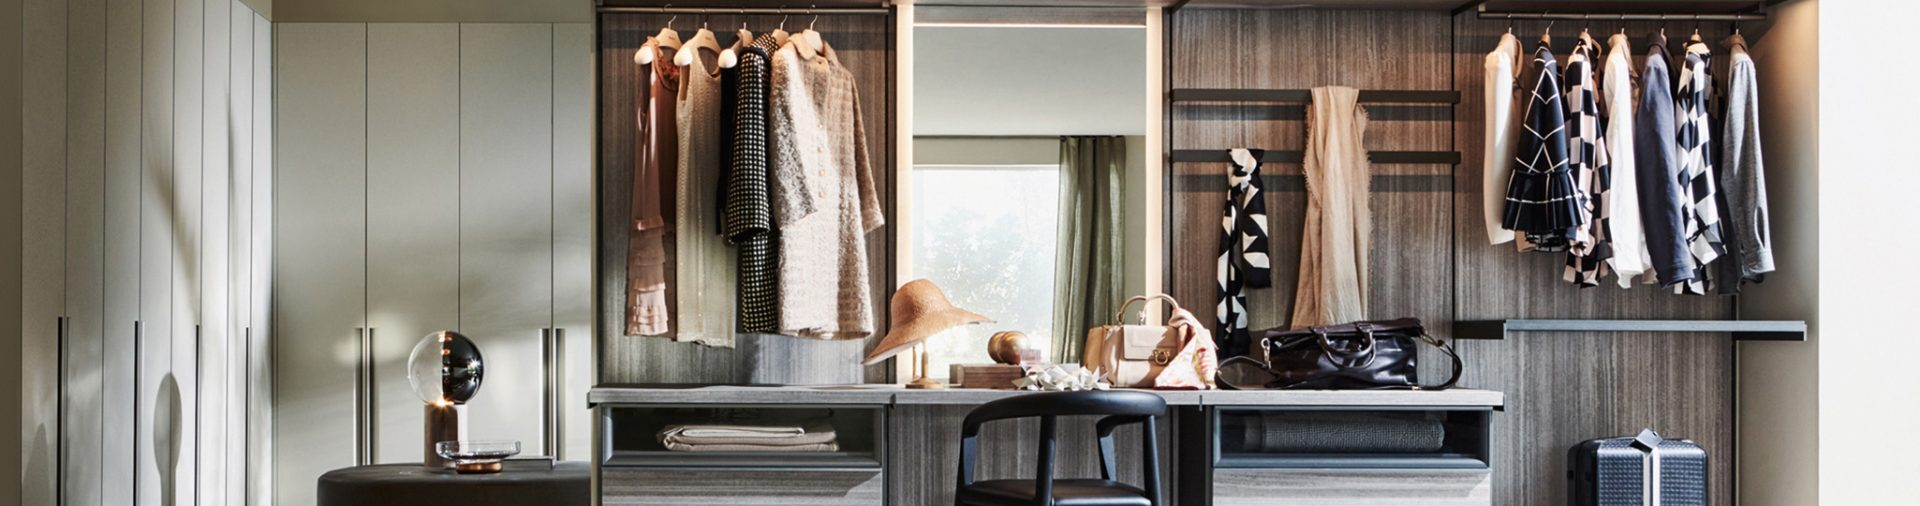 Master Dressing by Molteni is the new storage system designed by Vincent Van Duysen